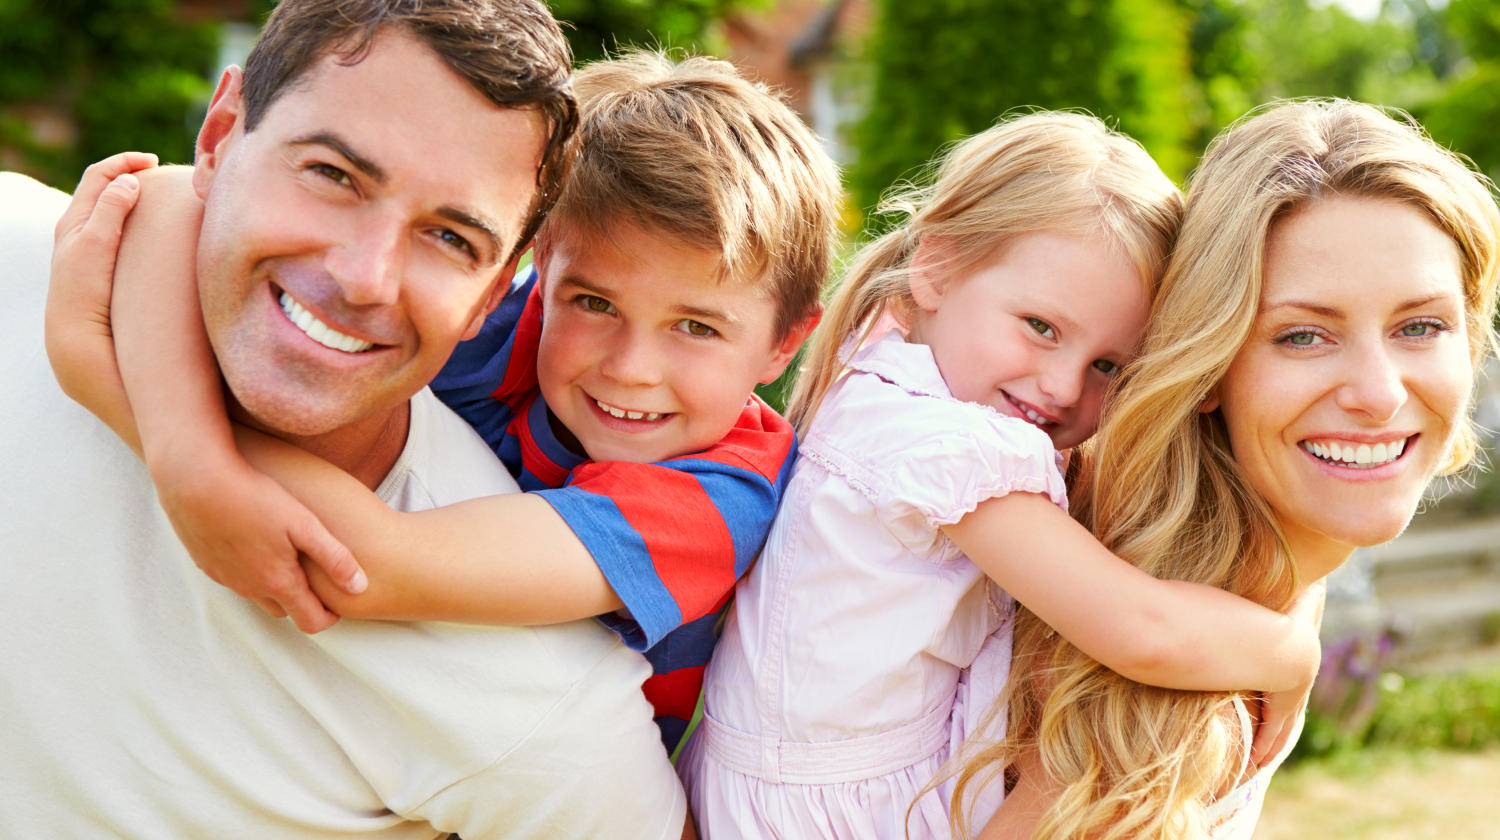 Featured | Happy Family In Garden | Ways To Live A Better, Happier Life | Live A Better Life